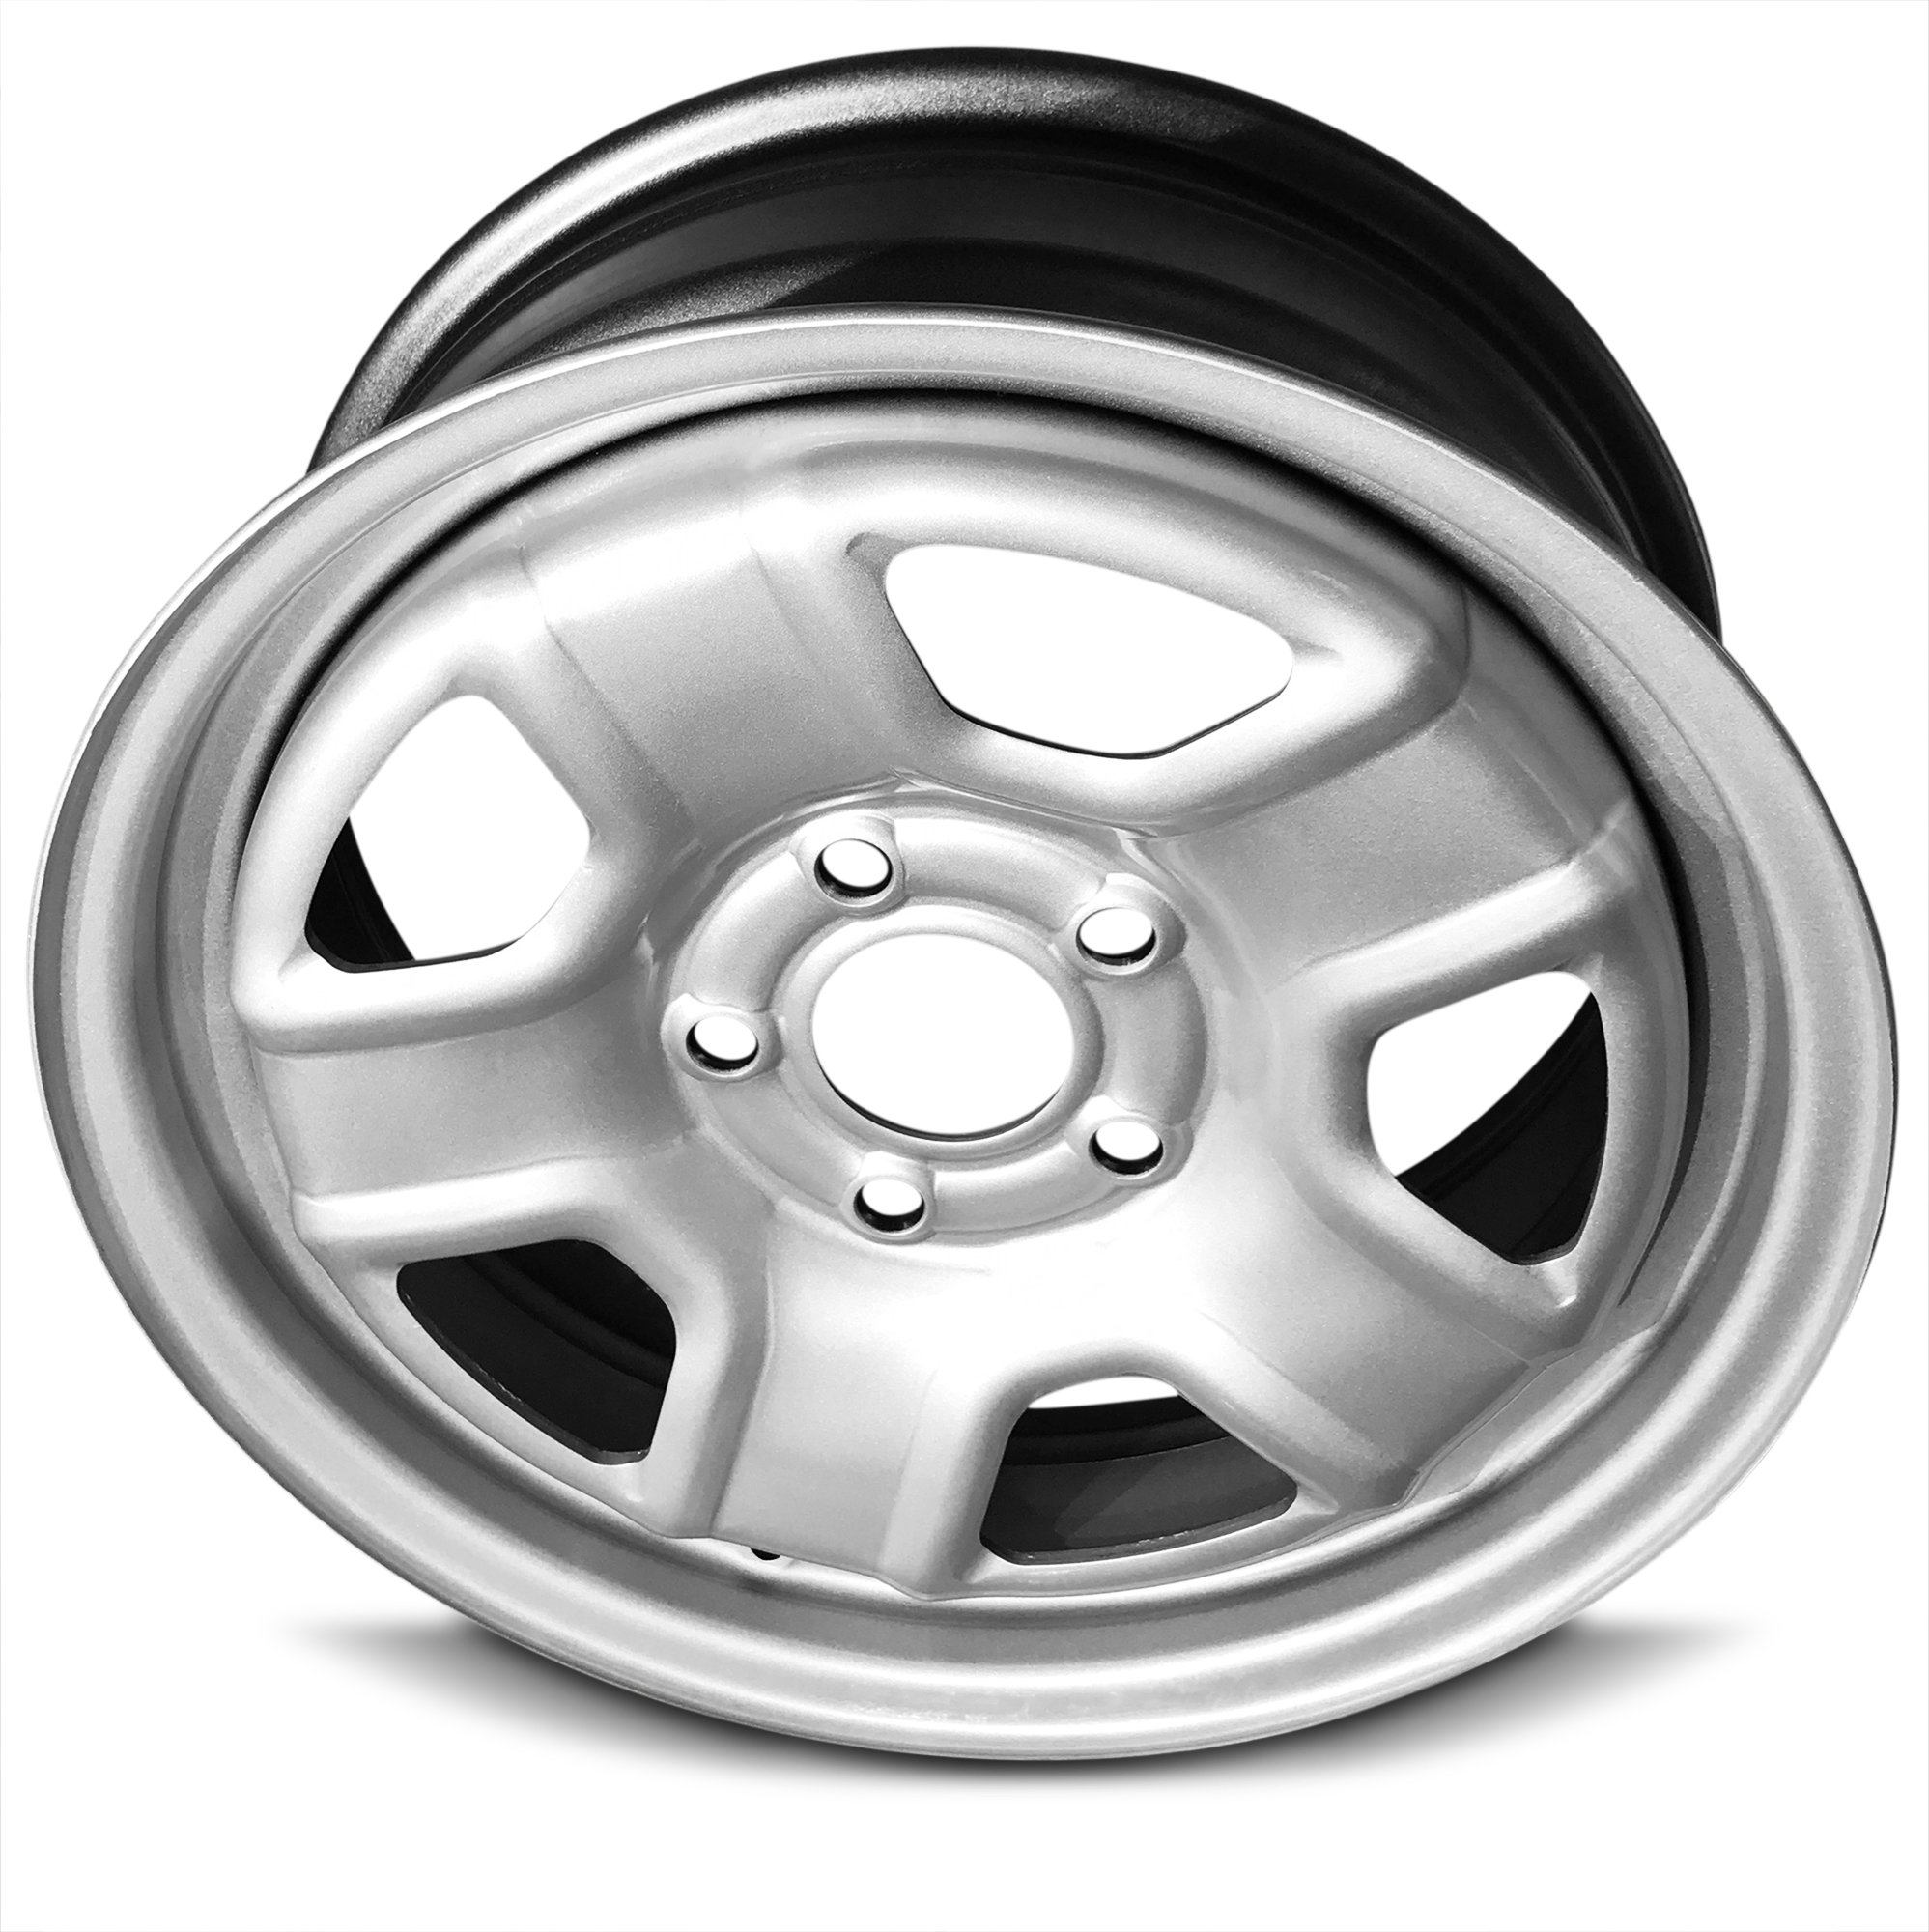 New 16 Inch Jeep Patriot Compass 5 Lug Silver Replacement Steel Wheel Rim 16x6.5 Inch 5 Lug 67.1mm Center Bore 40mm Offset WAA by Road Ready Wheels (Image #4)